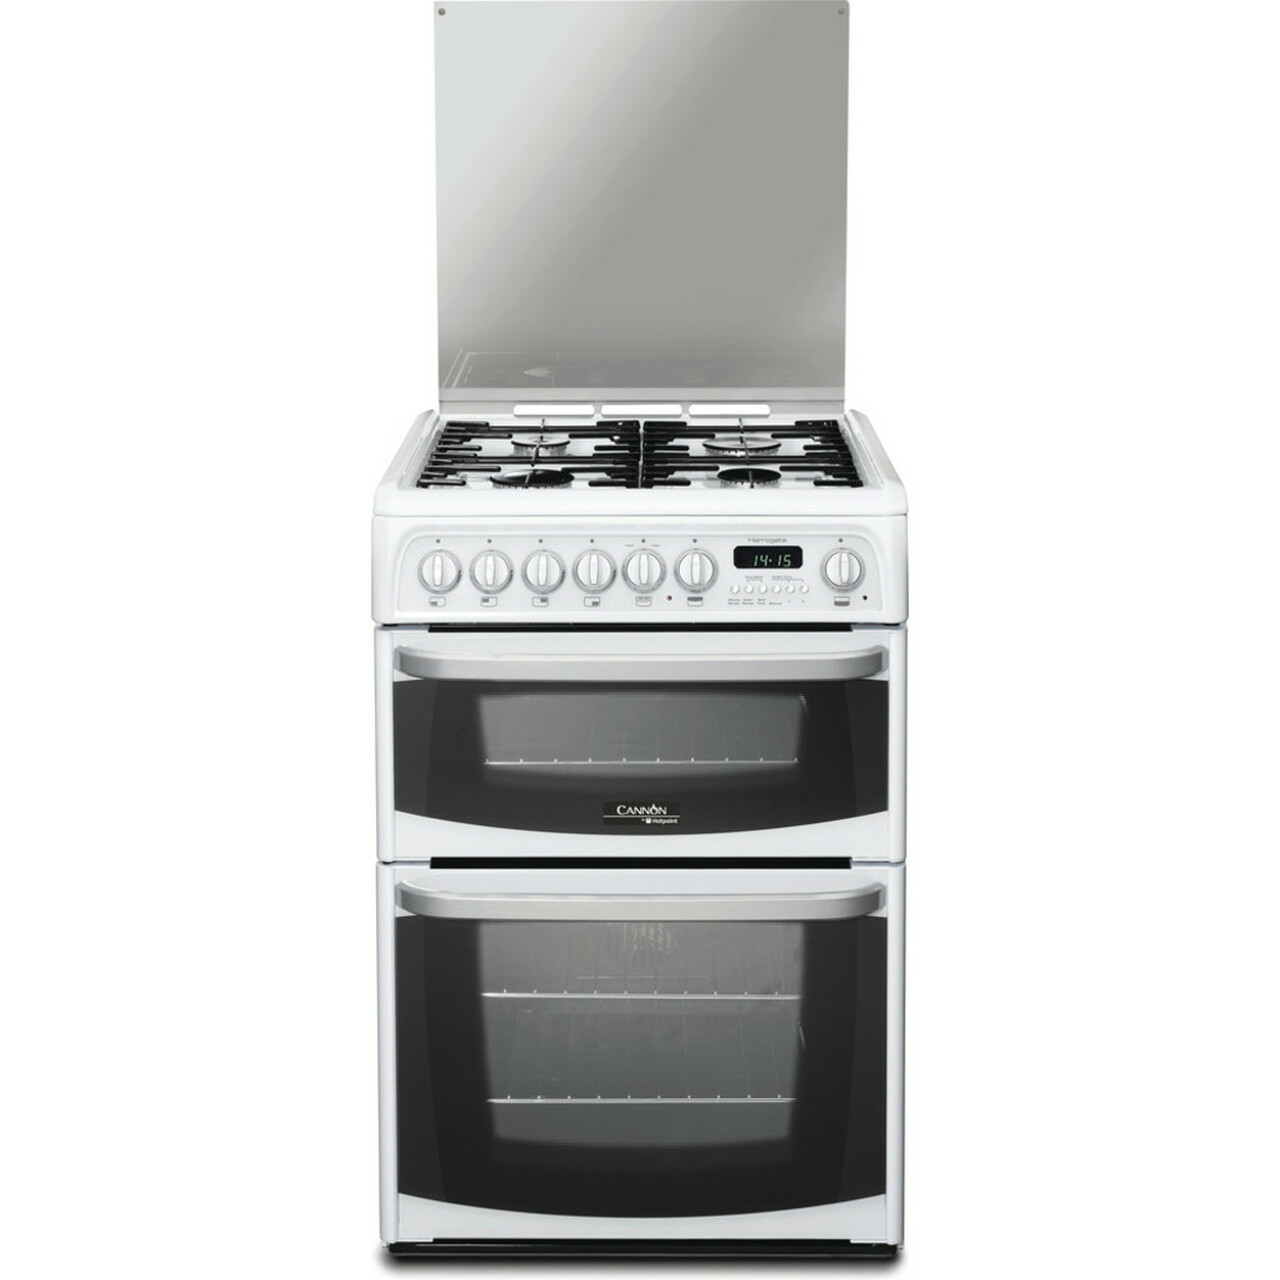 Image of Hotpoint CH60DHWF